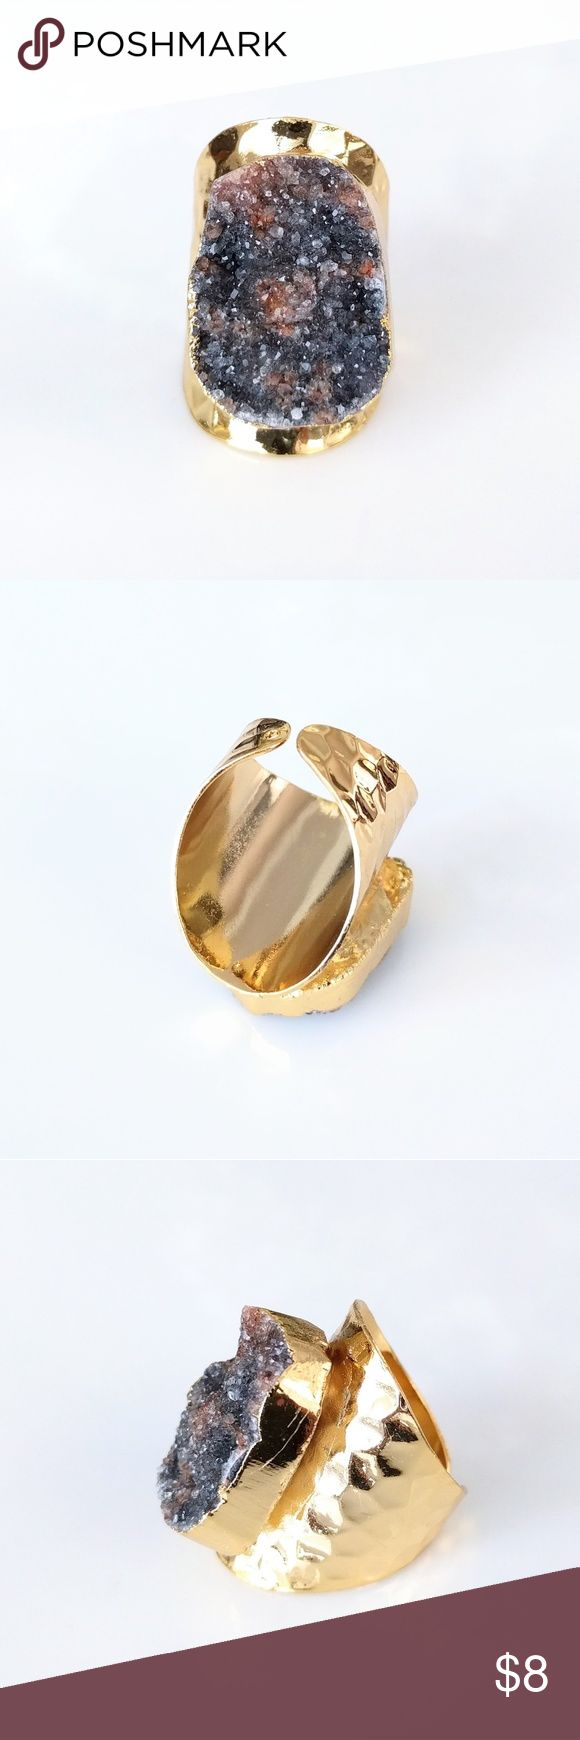 """Gold-plated genuine agate druzy statement ring Nickel and lead free.  About a size 7.  Not adjustable.  PRICE IS FIRM and extremely reasonable; click """"add to bundle"""" to save 10% on your purchase of 2+ items today! Jewelry Rings"""